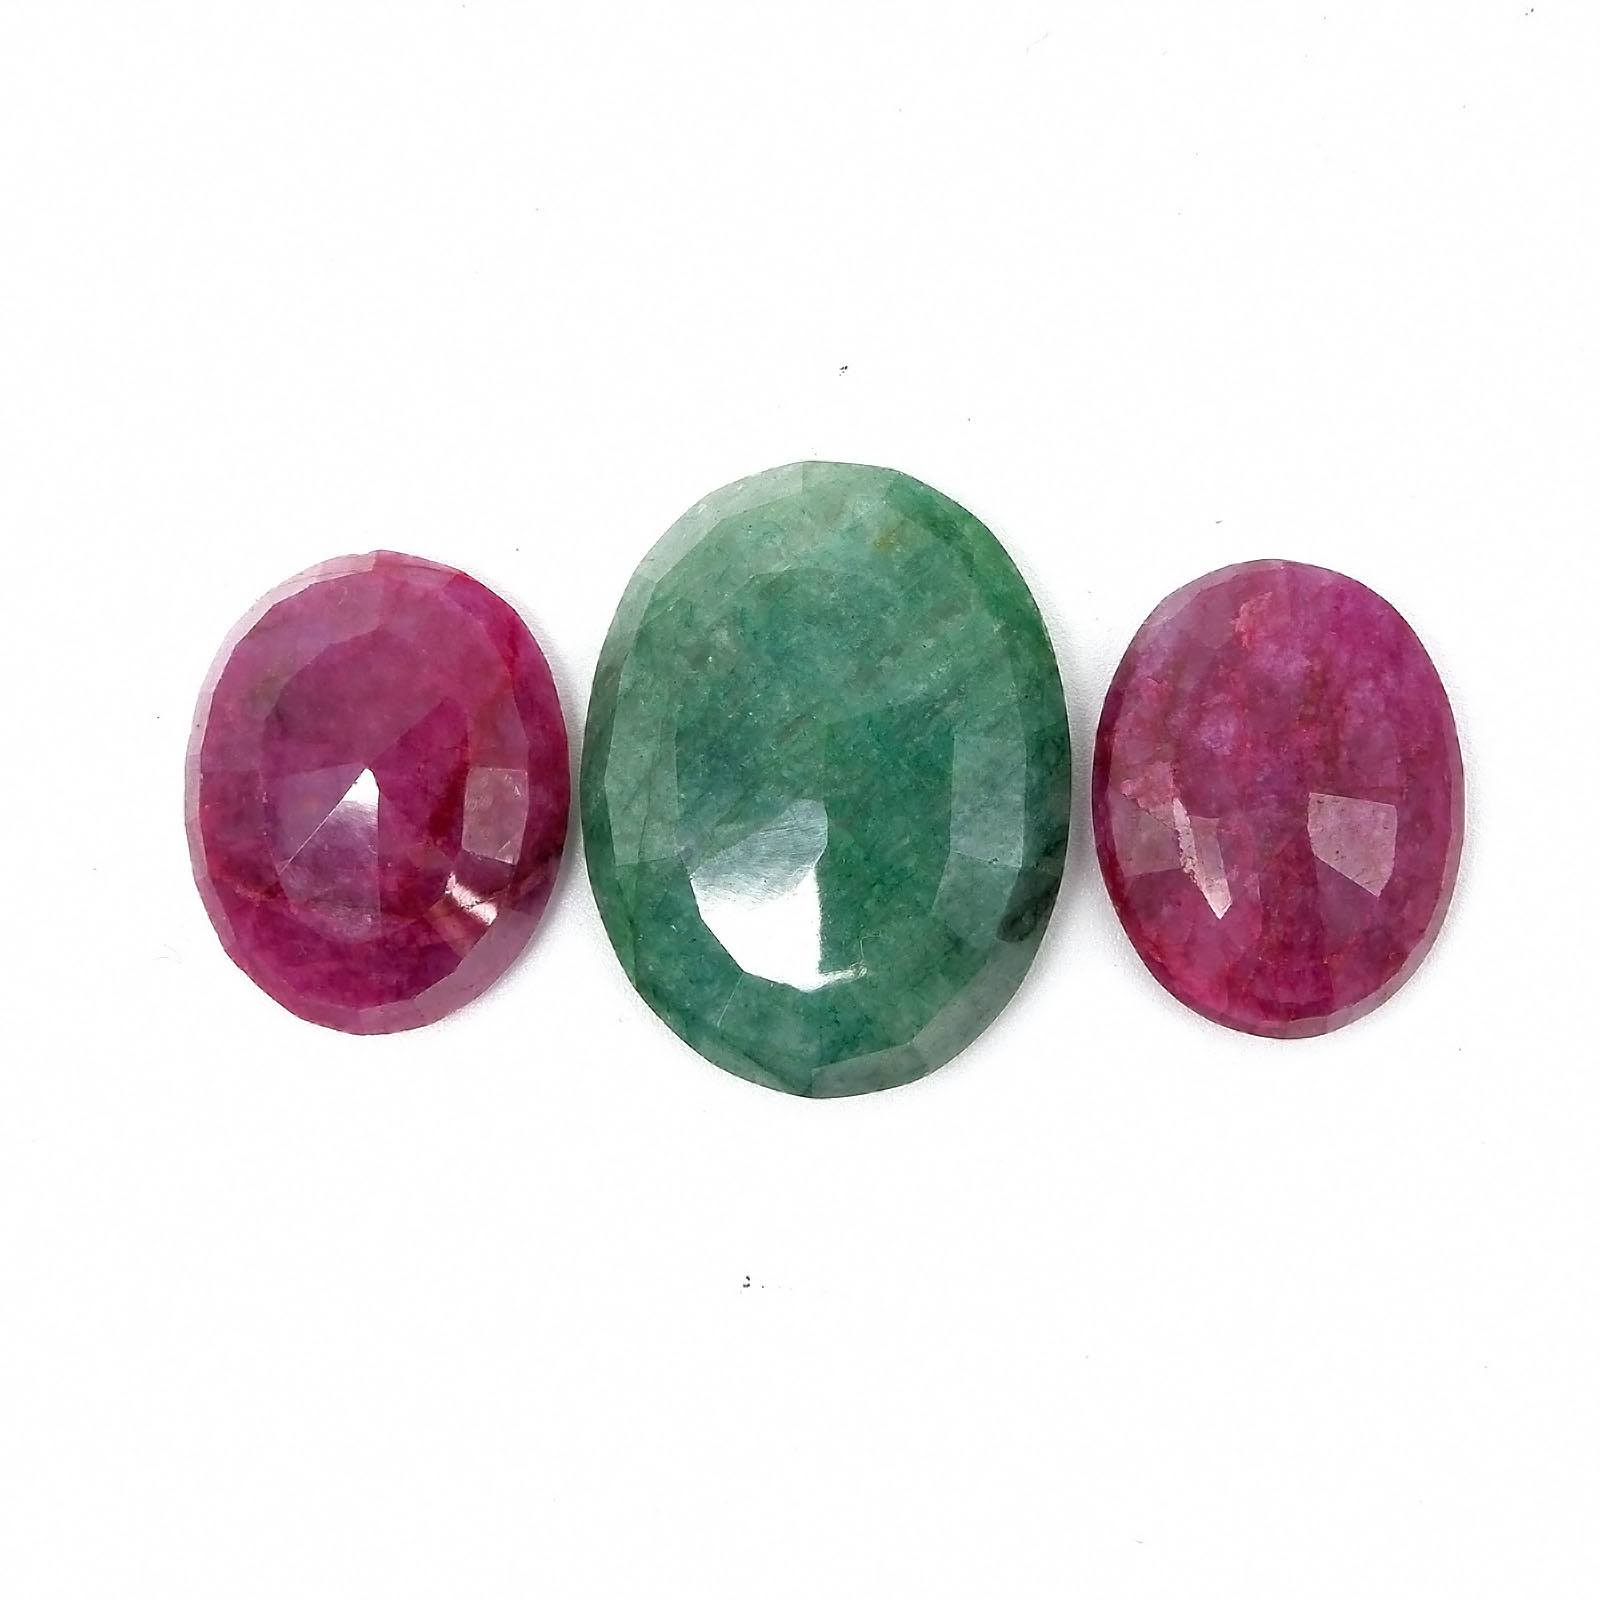 'Facetted Opaque Ruby 24.5 by 19.5mm, Facetted Opaque Ruby 19 by 18mm and Facetted Opaque Emerald 32 by 24.5cm'